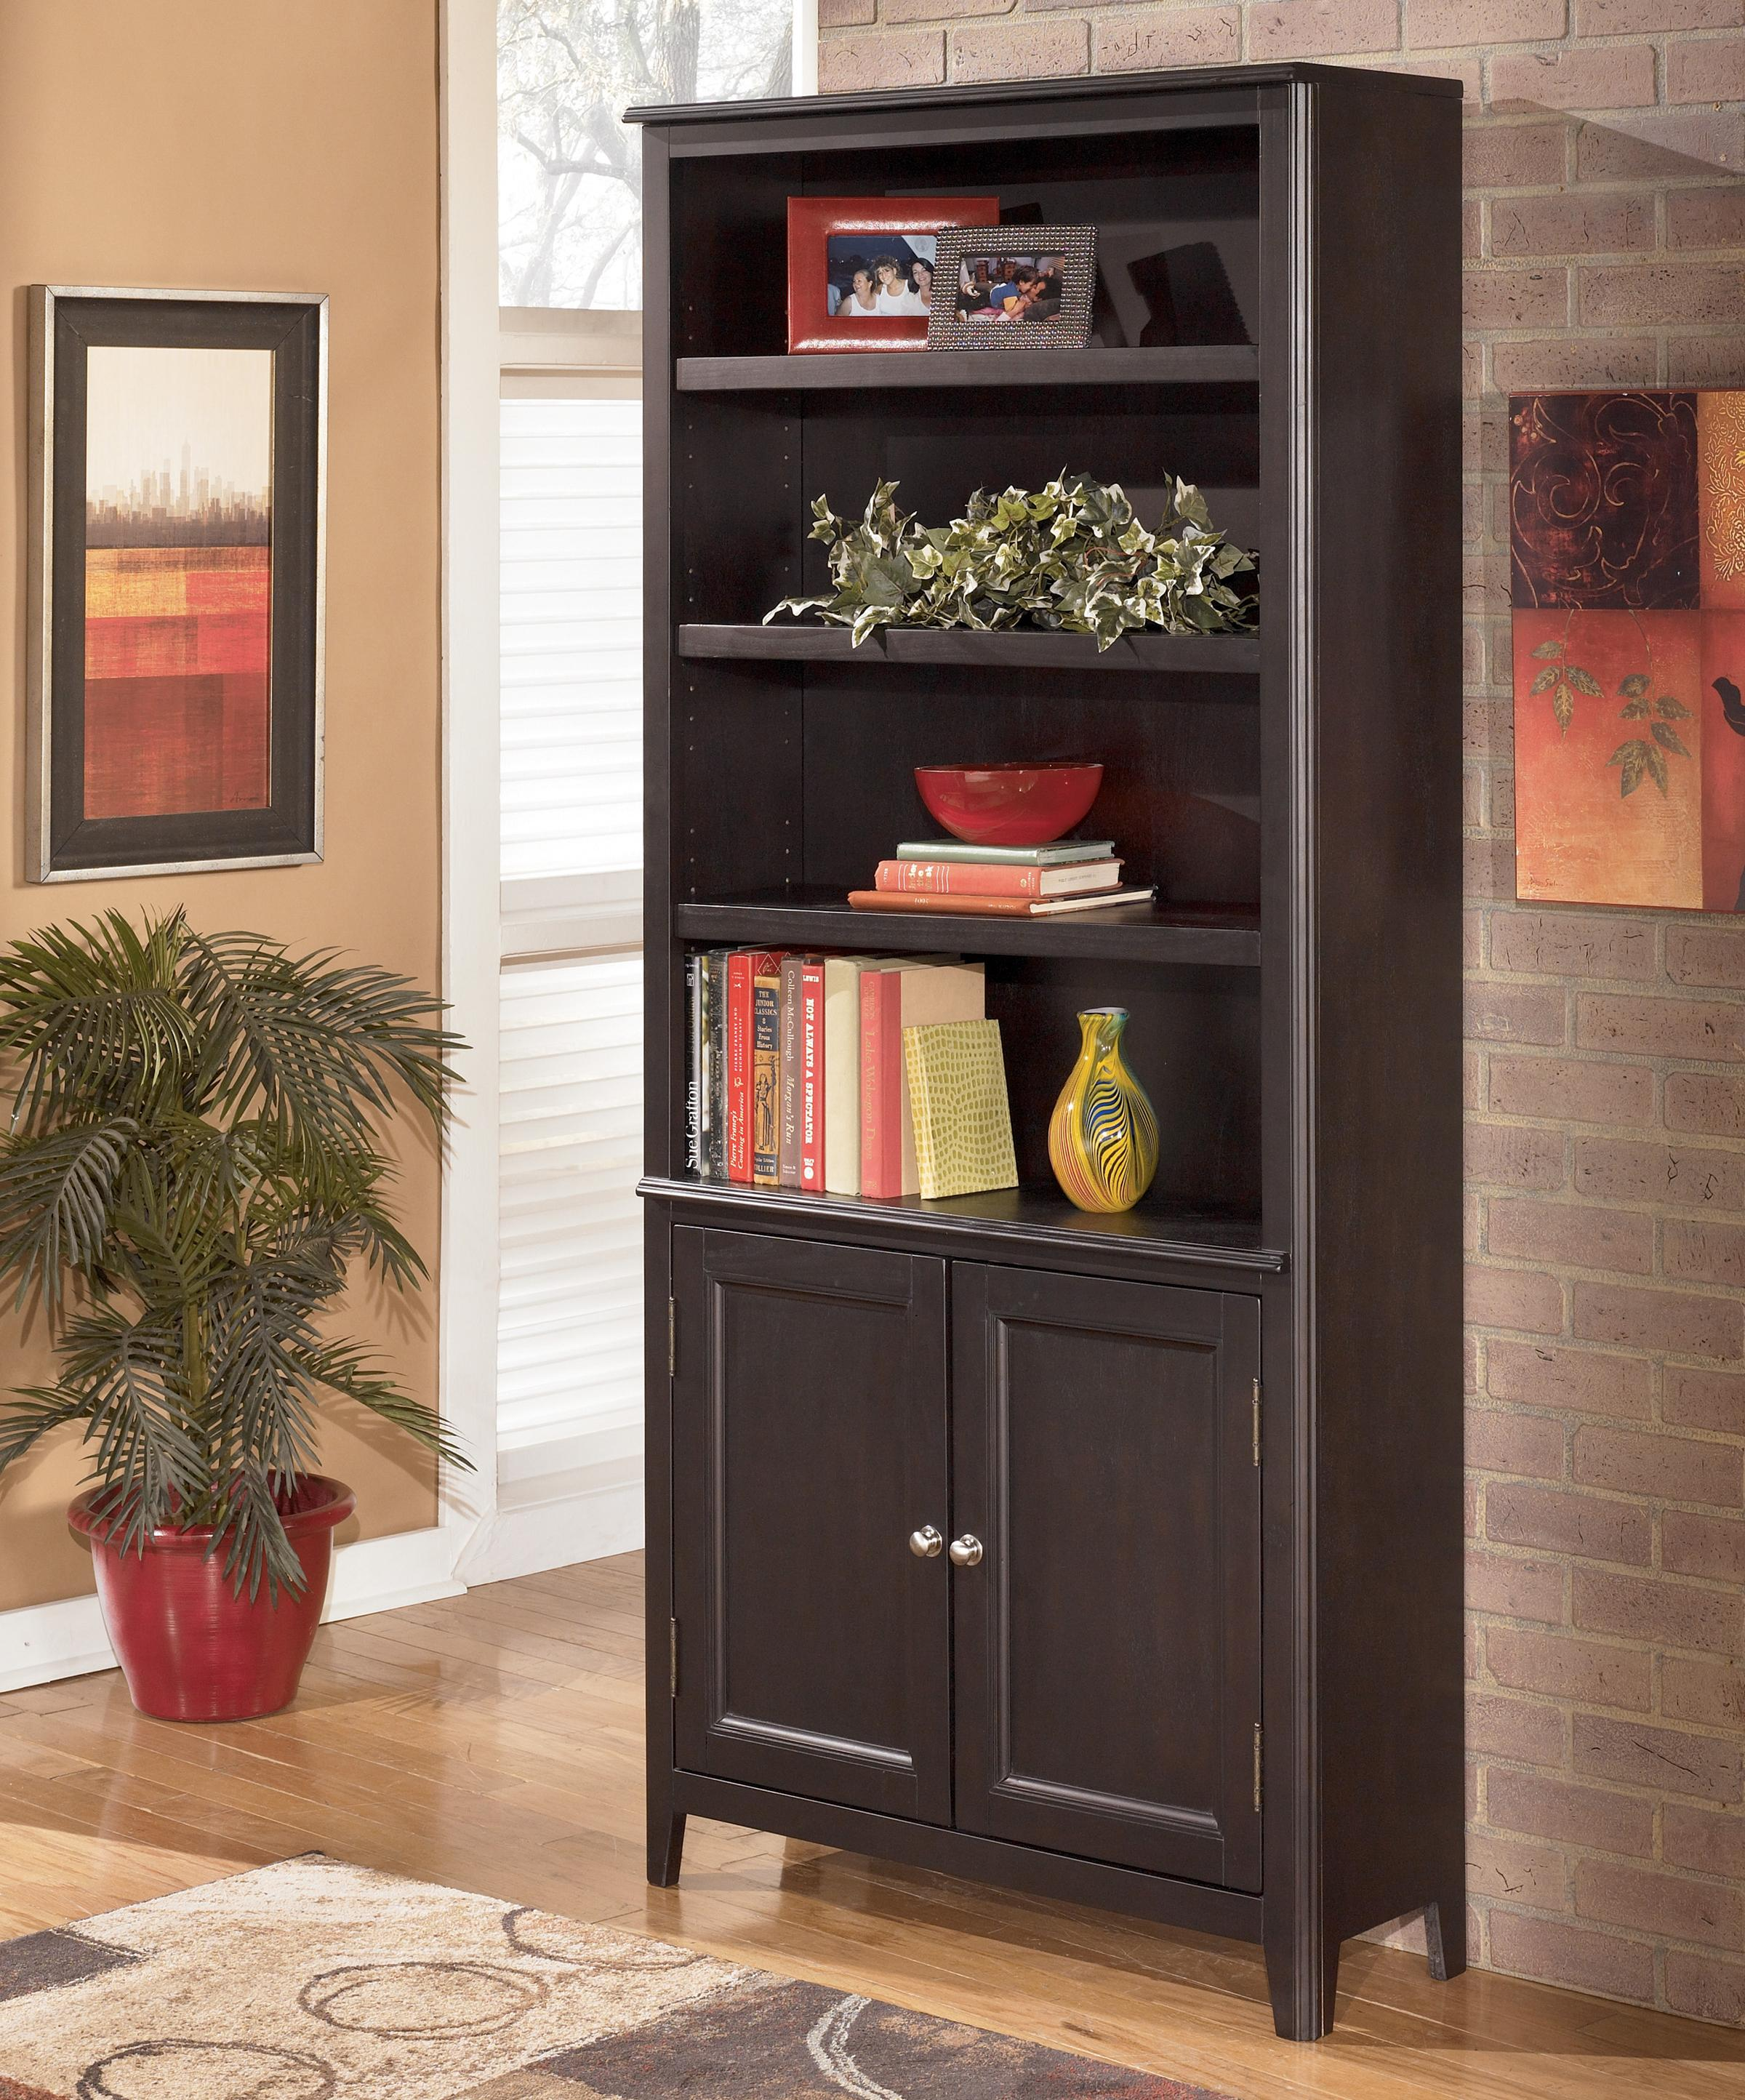 Signature Design by Ashley Carlyle Large Door Bookcase - Item Number: H371-18